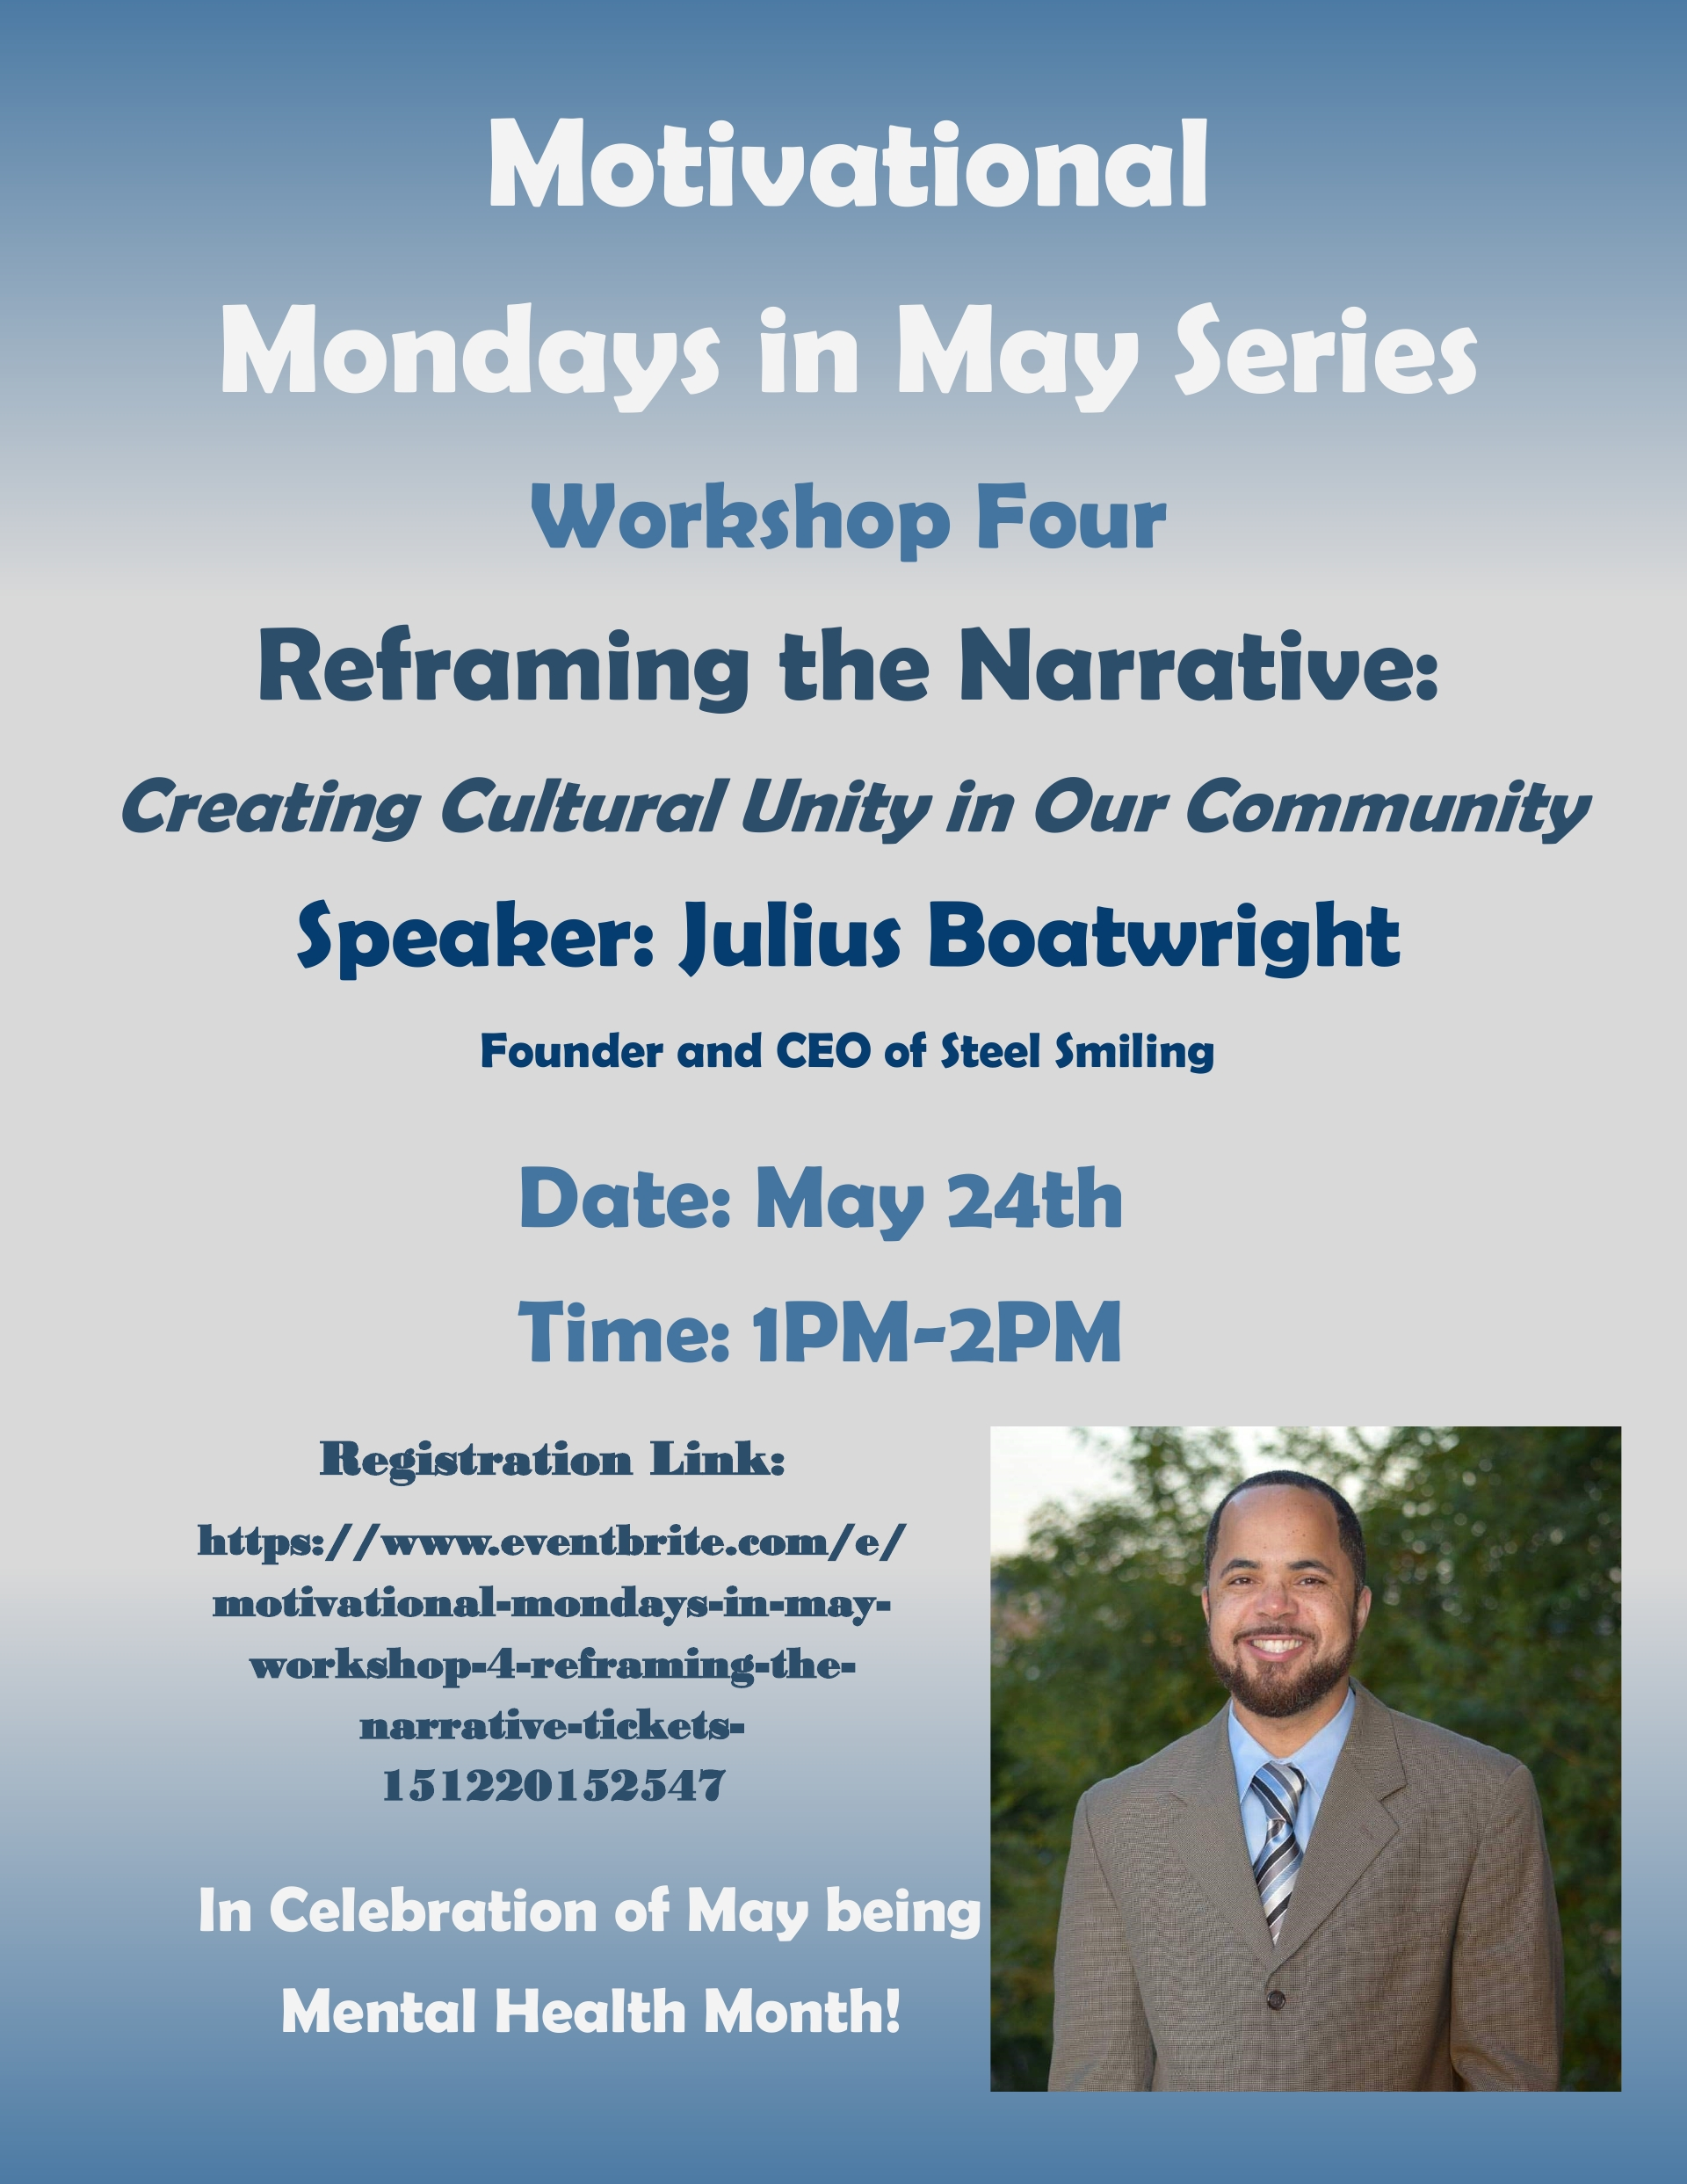 Creating Cultural Unity in Our Community Mondays in May Series Workshop Four May 24, 2021